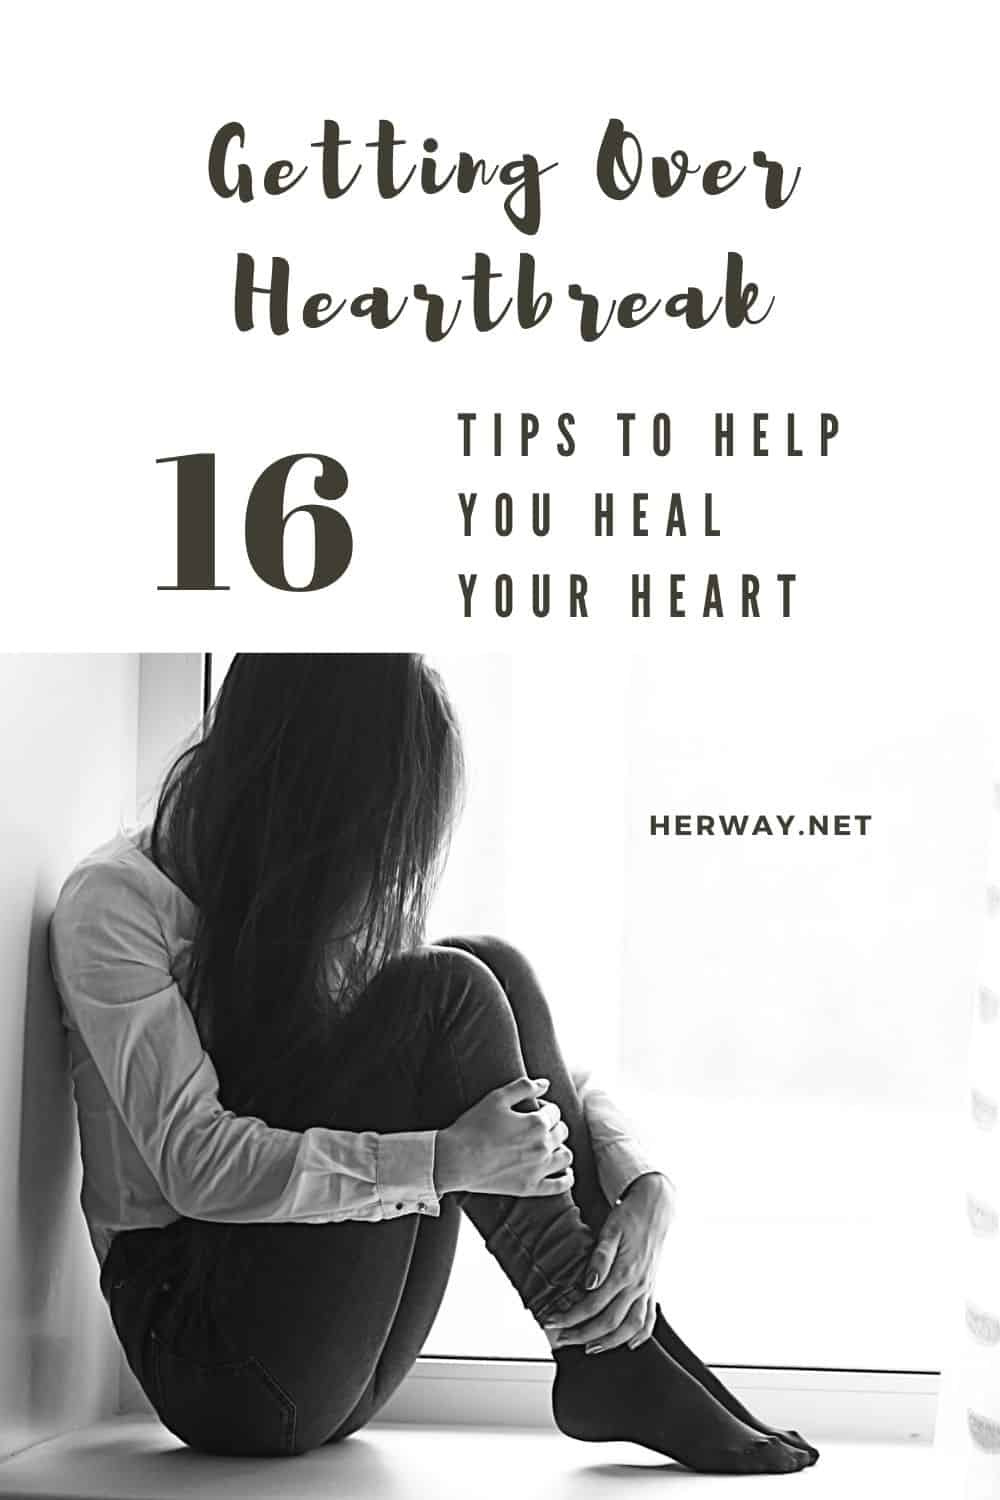 Getting Over Heartbreak: 16 Tips To Help You Heal Your Heart